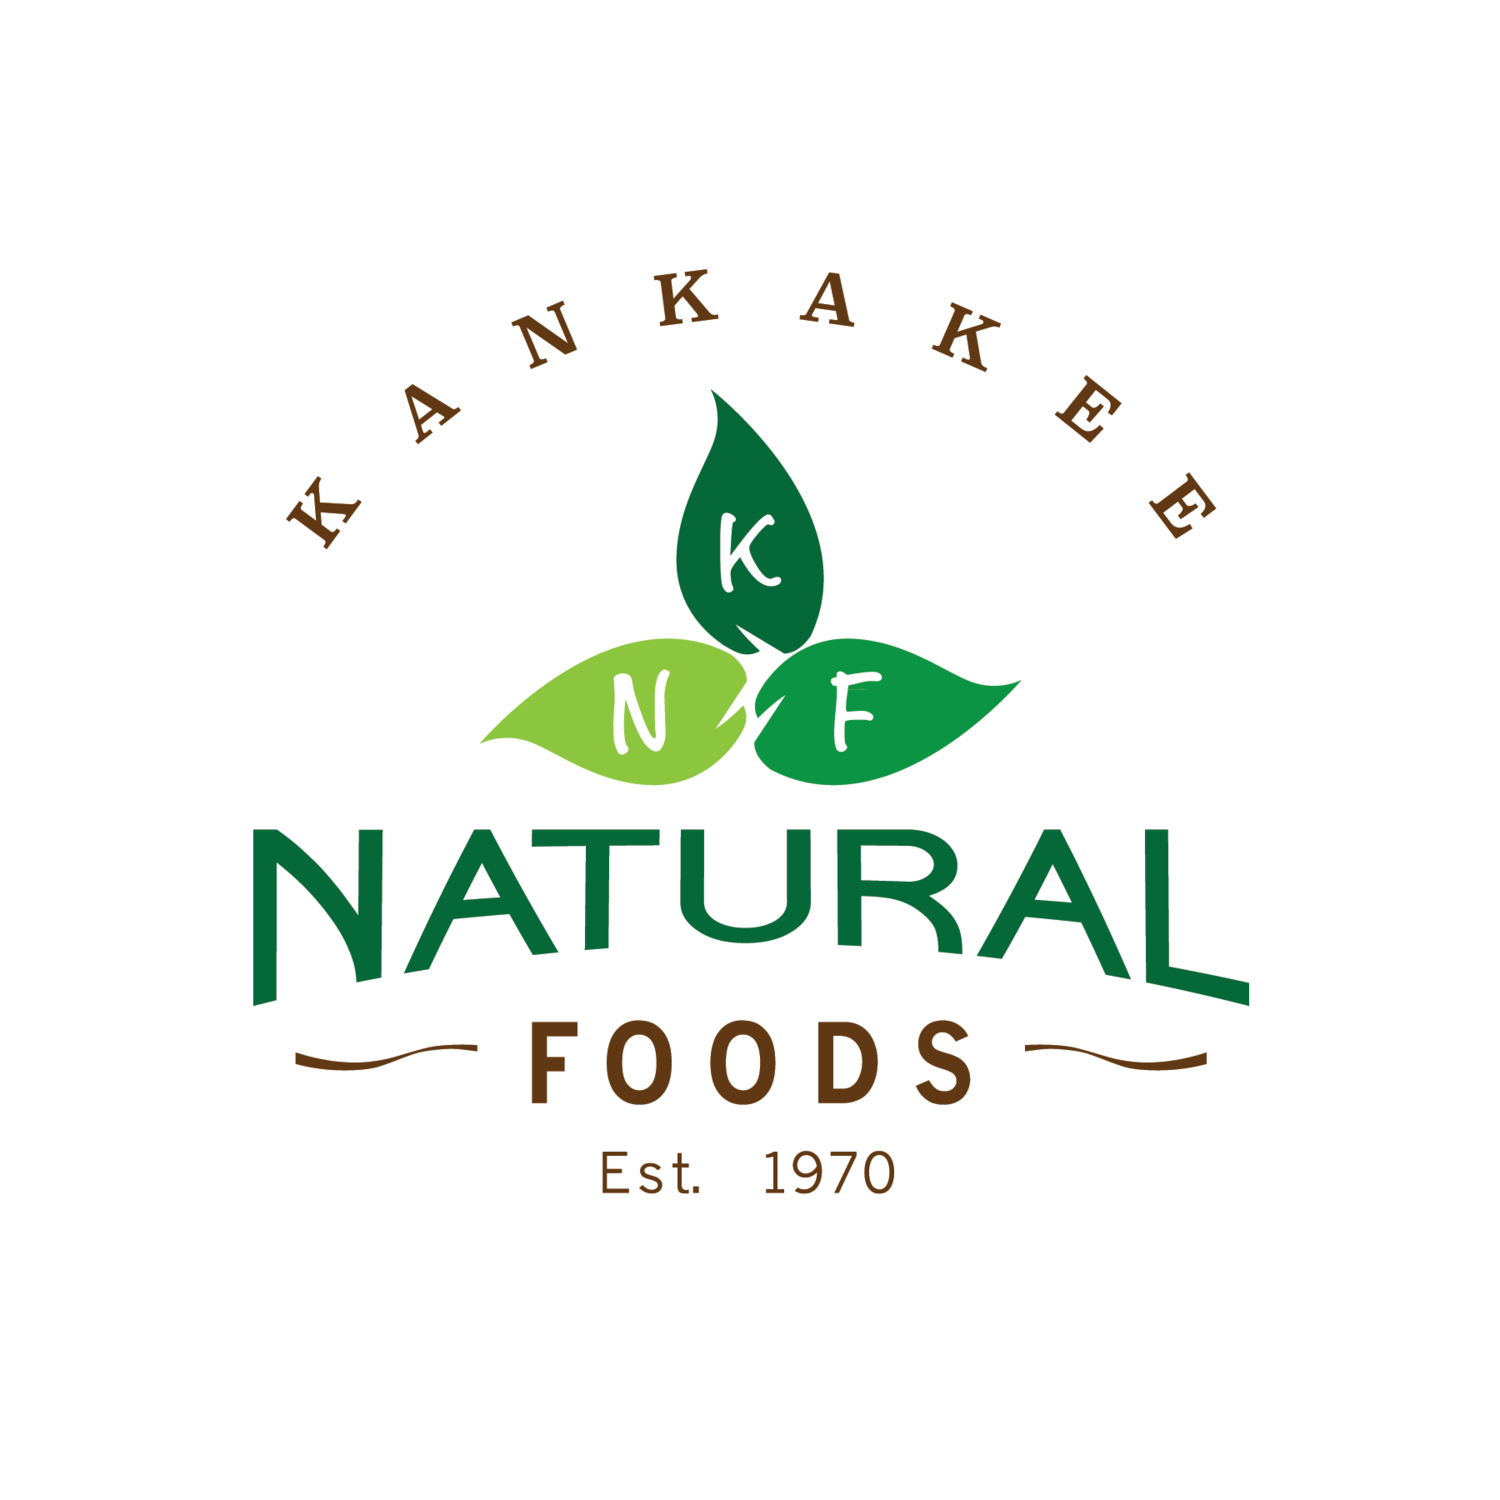 Kankakee Natural Foods